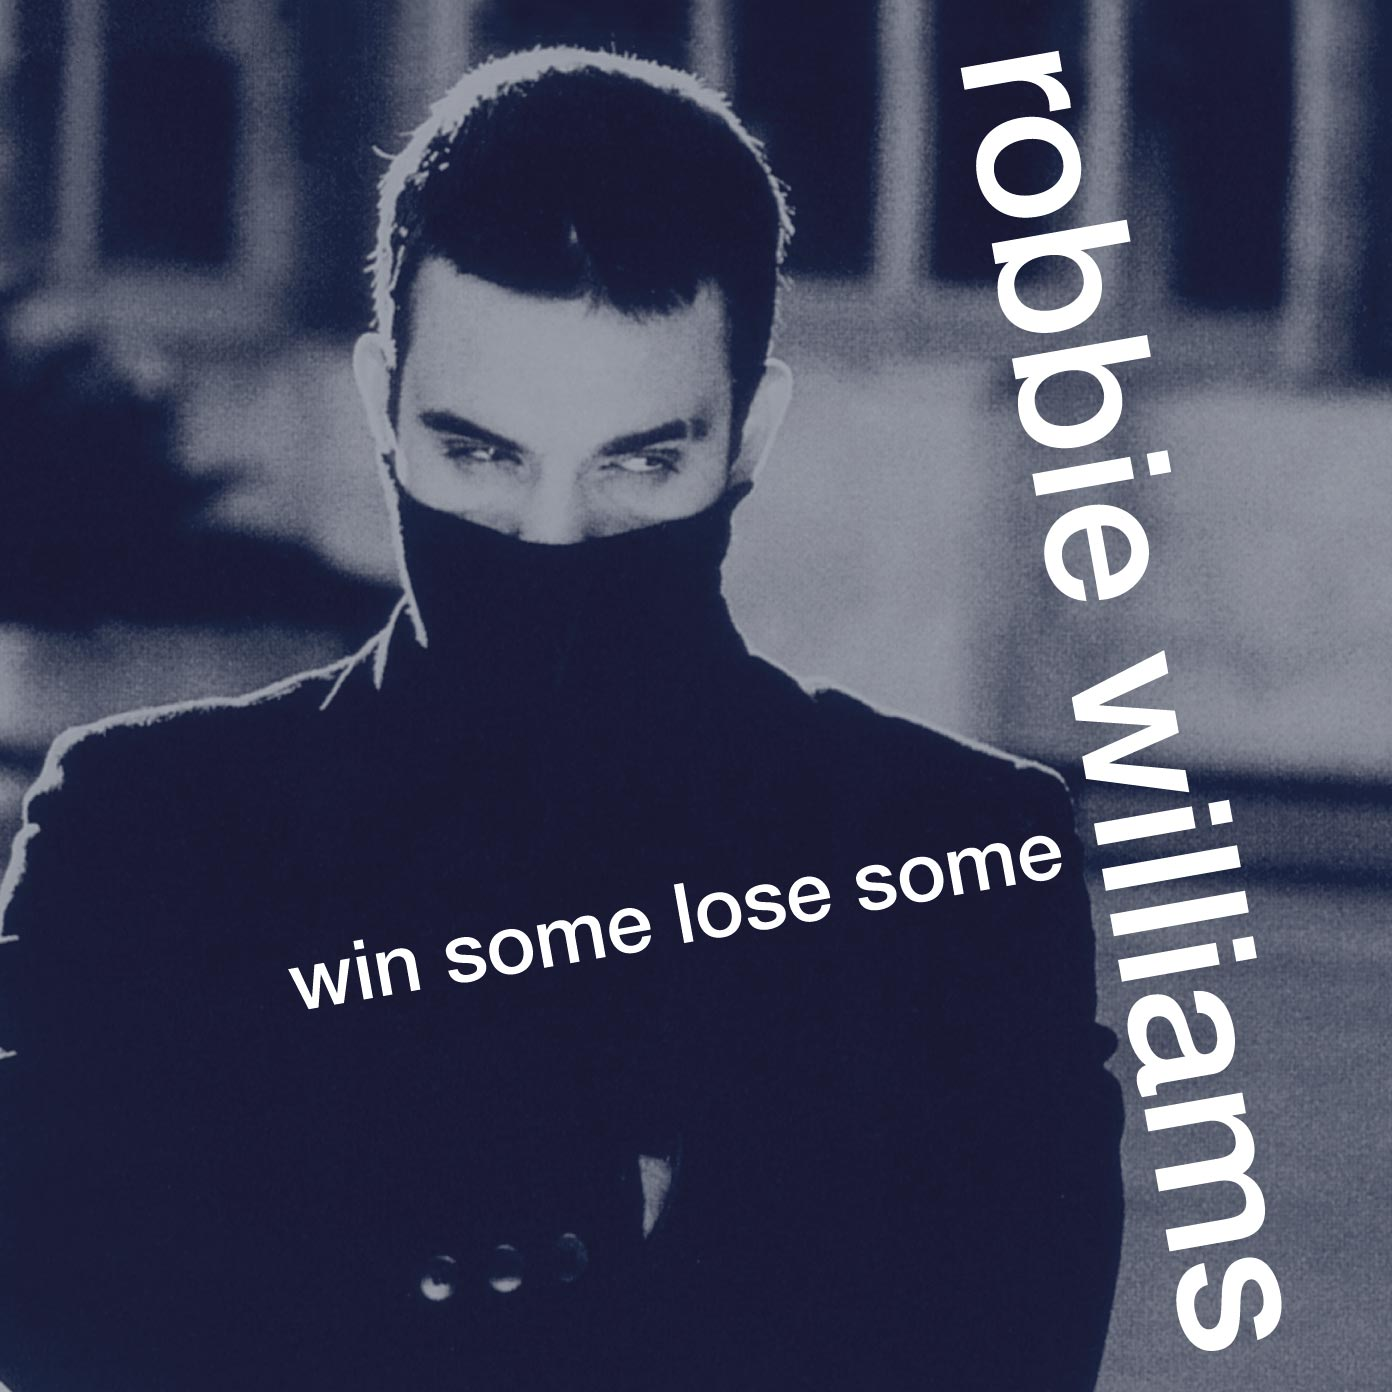 ROBBIE WILLIAMS - WIN SOME LOSE SOME